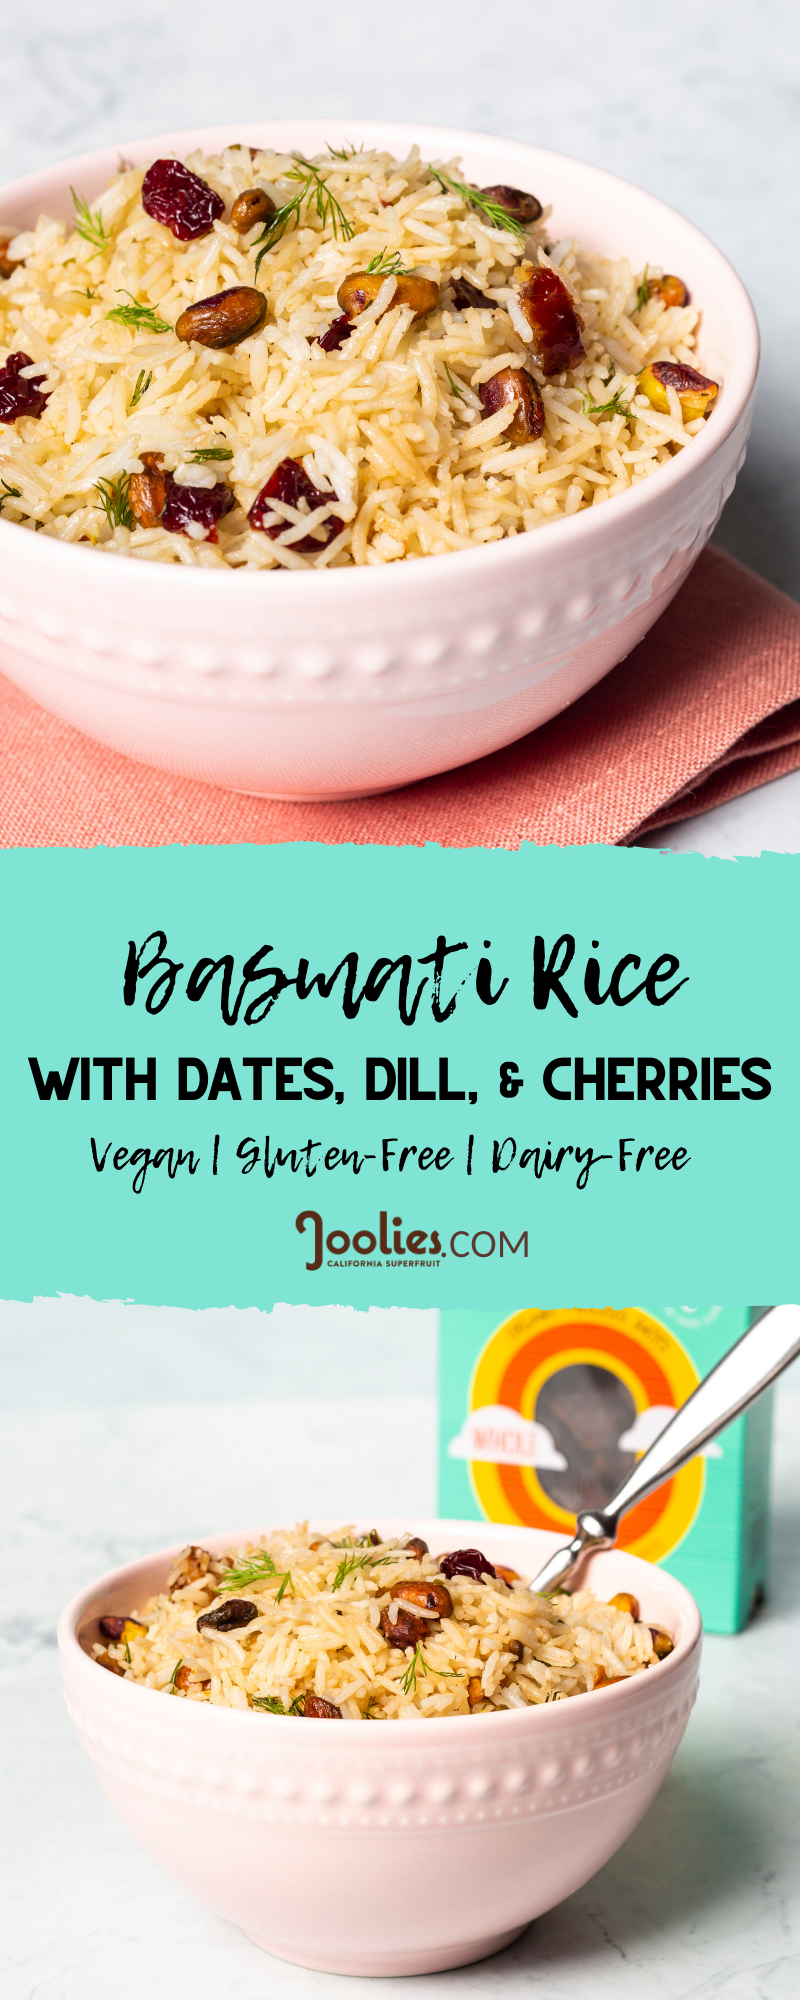 basmati rice with dates + dill